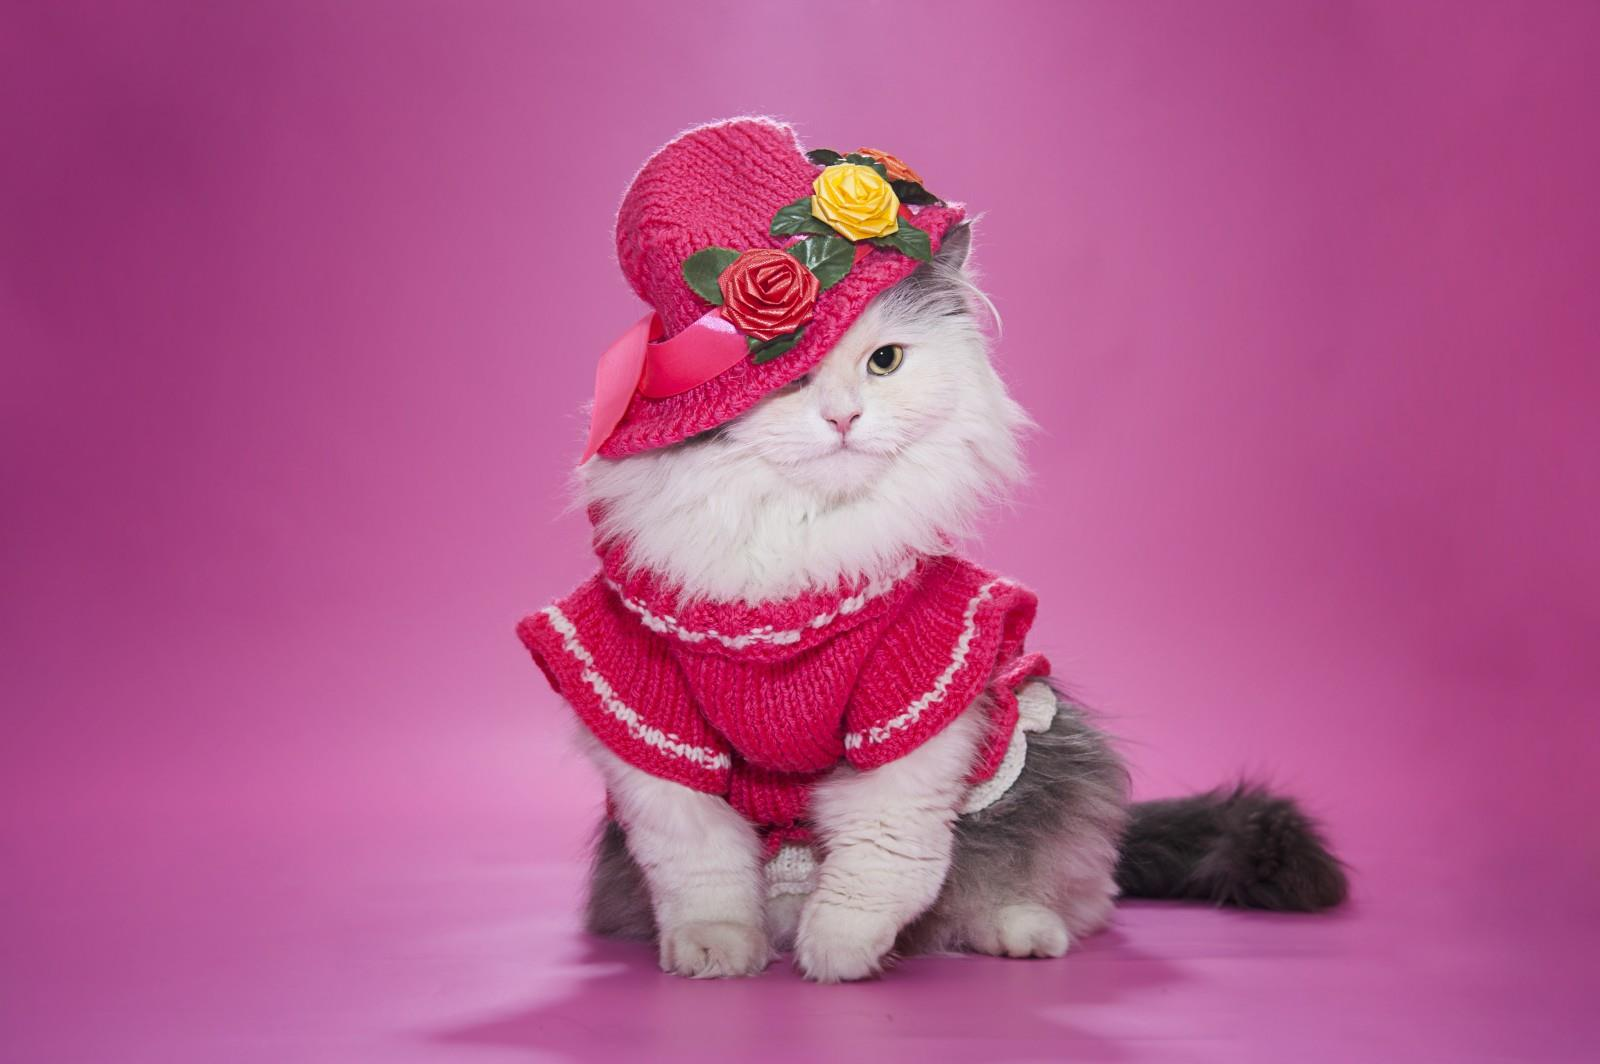 Cute Cat image in pink dress and hat